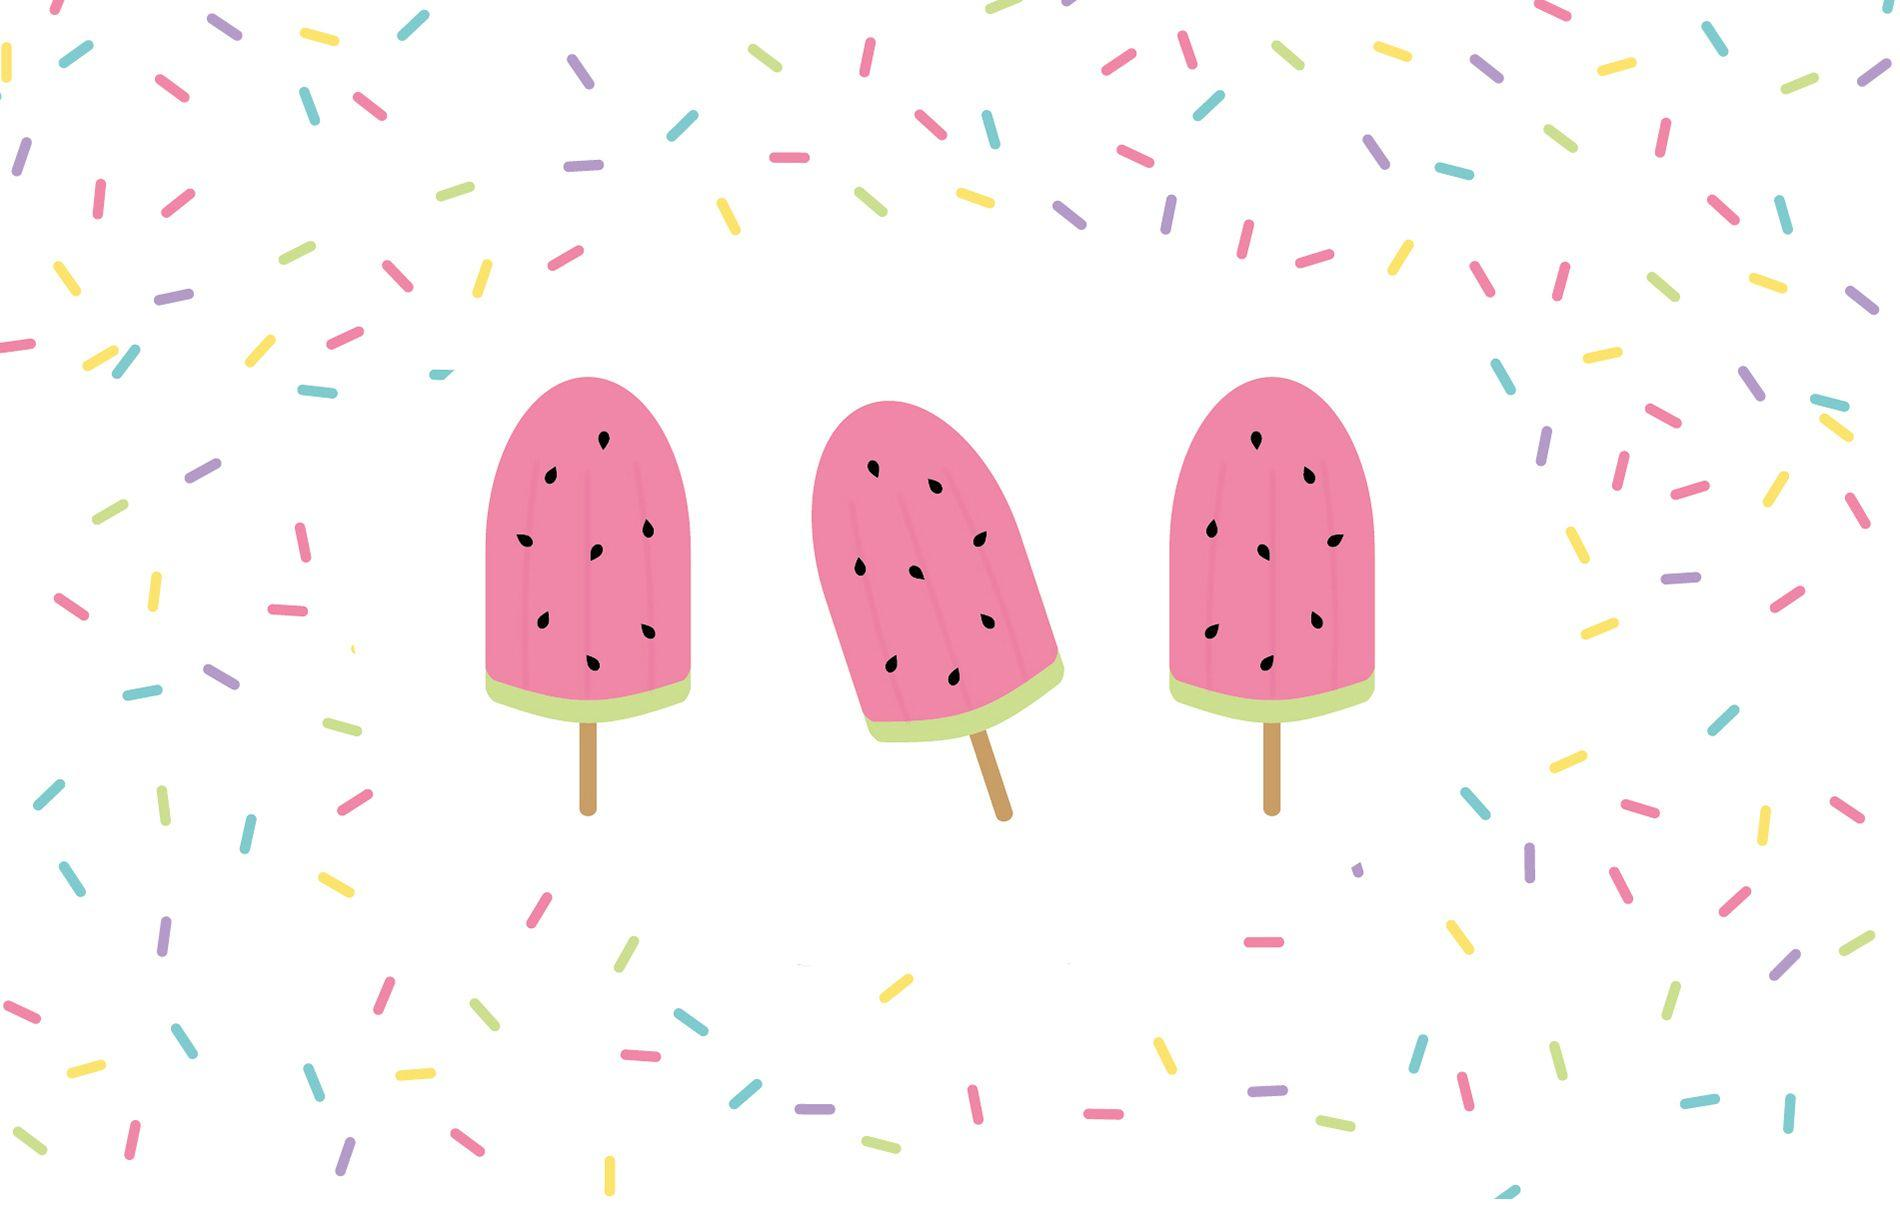 Watermelon popsicle desktop wallpapers – Make and Tell